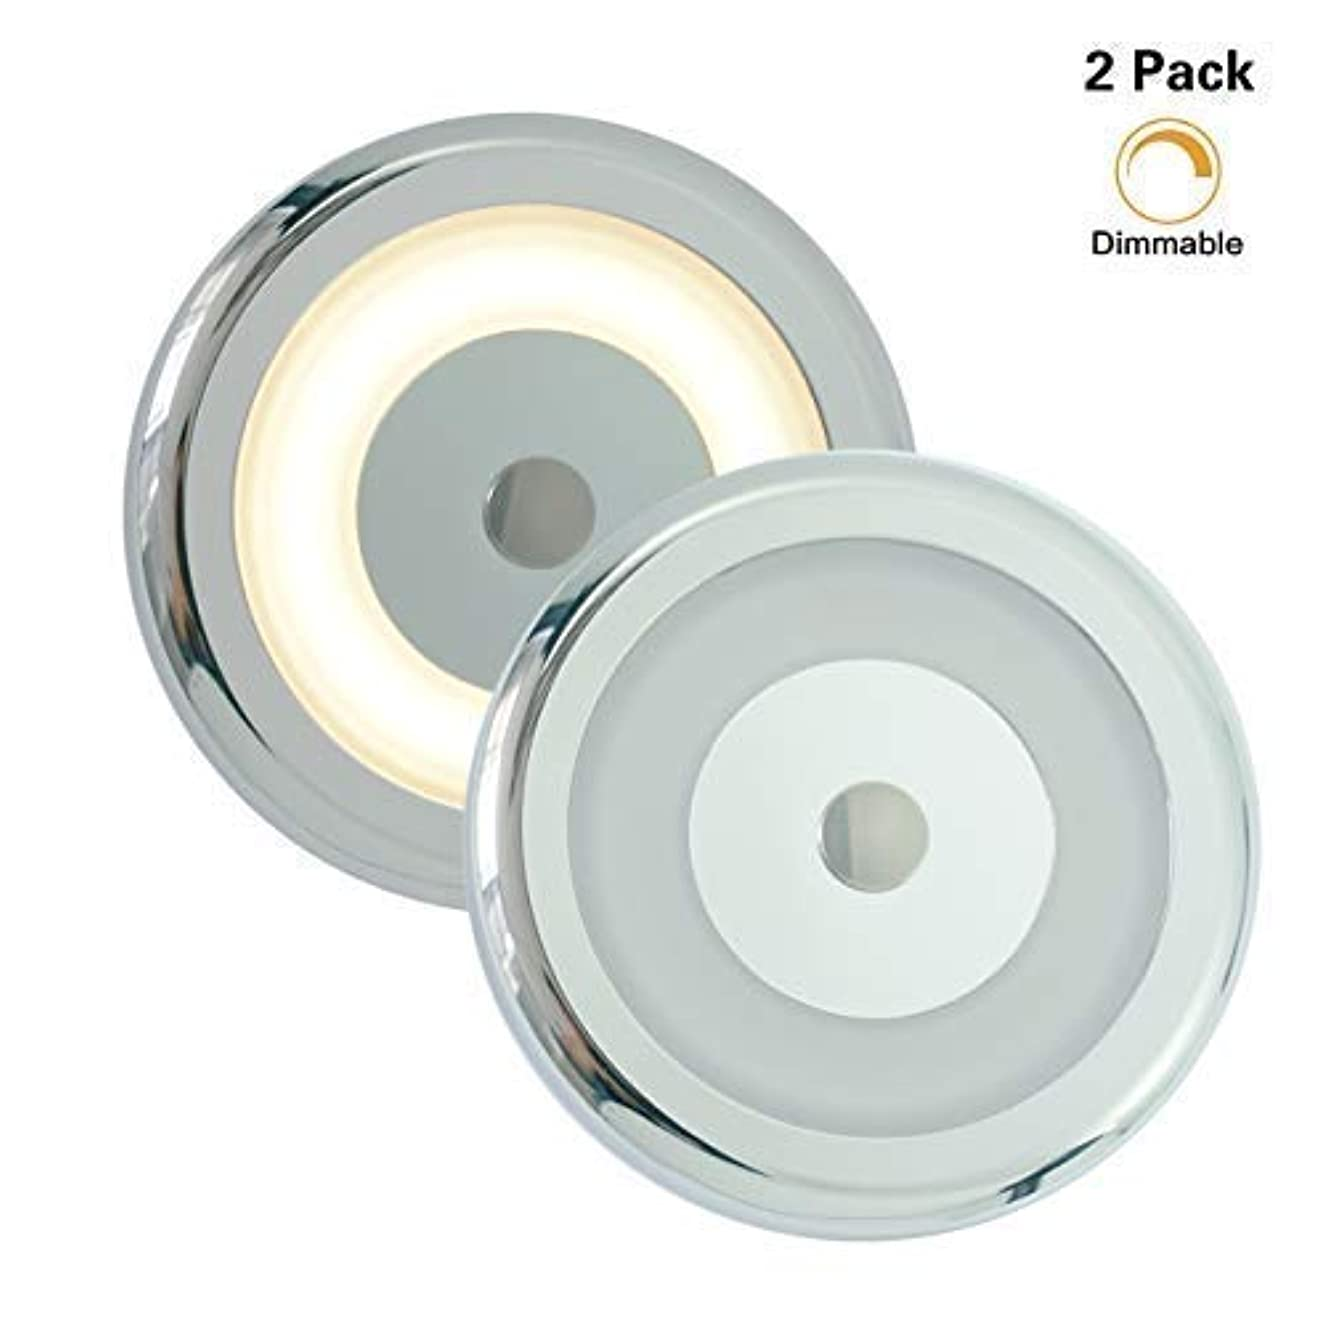 2 Pk RV Boat Touch Ceiling LED Light - Genuine Marine DC 12V 3W 2800K Soft White Full Aluminum Tap Light, Stepless Dimmable, Surface Mount and Hidden Fasteners Design, Stainless Steel Screws Included